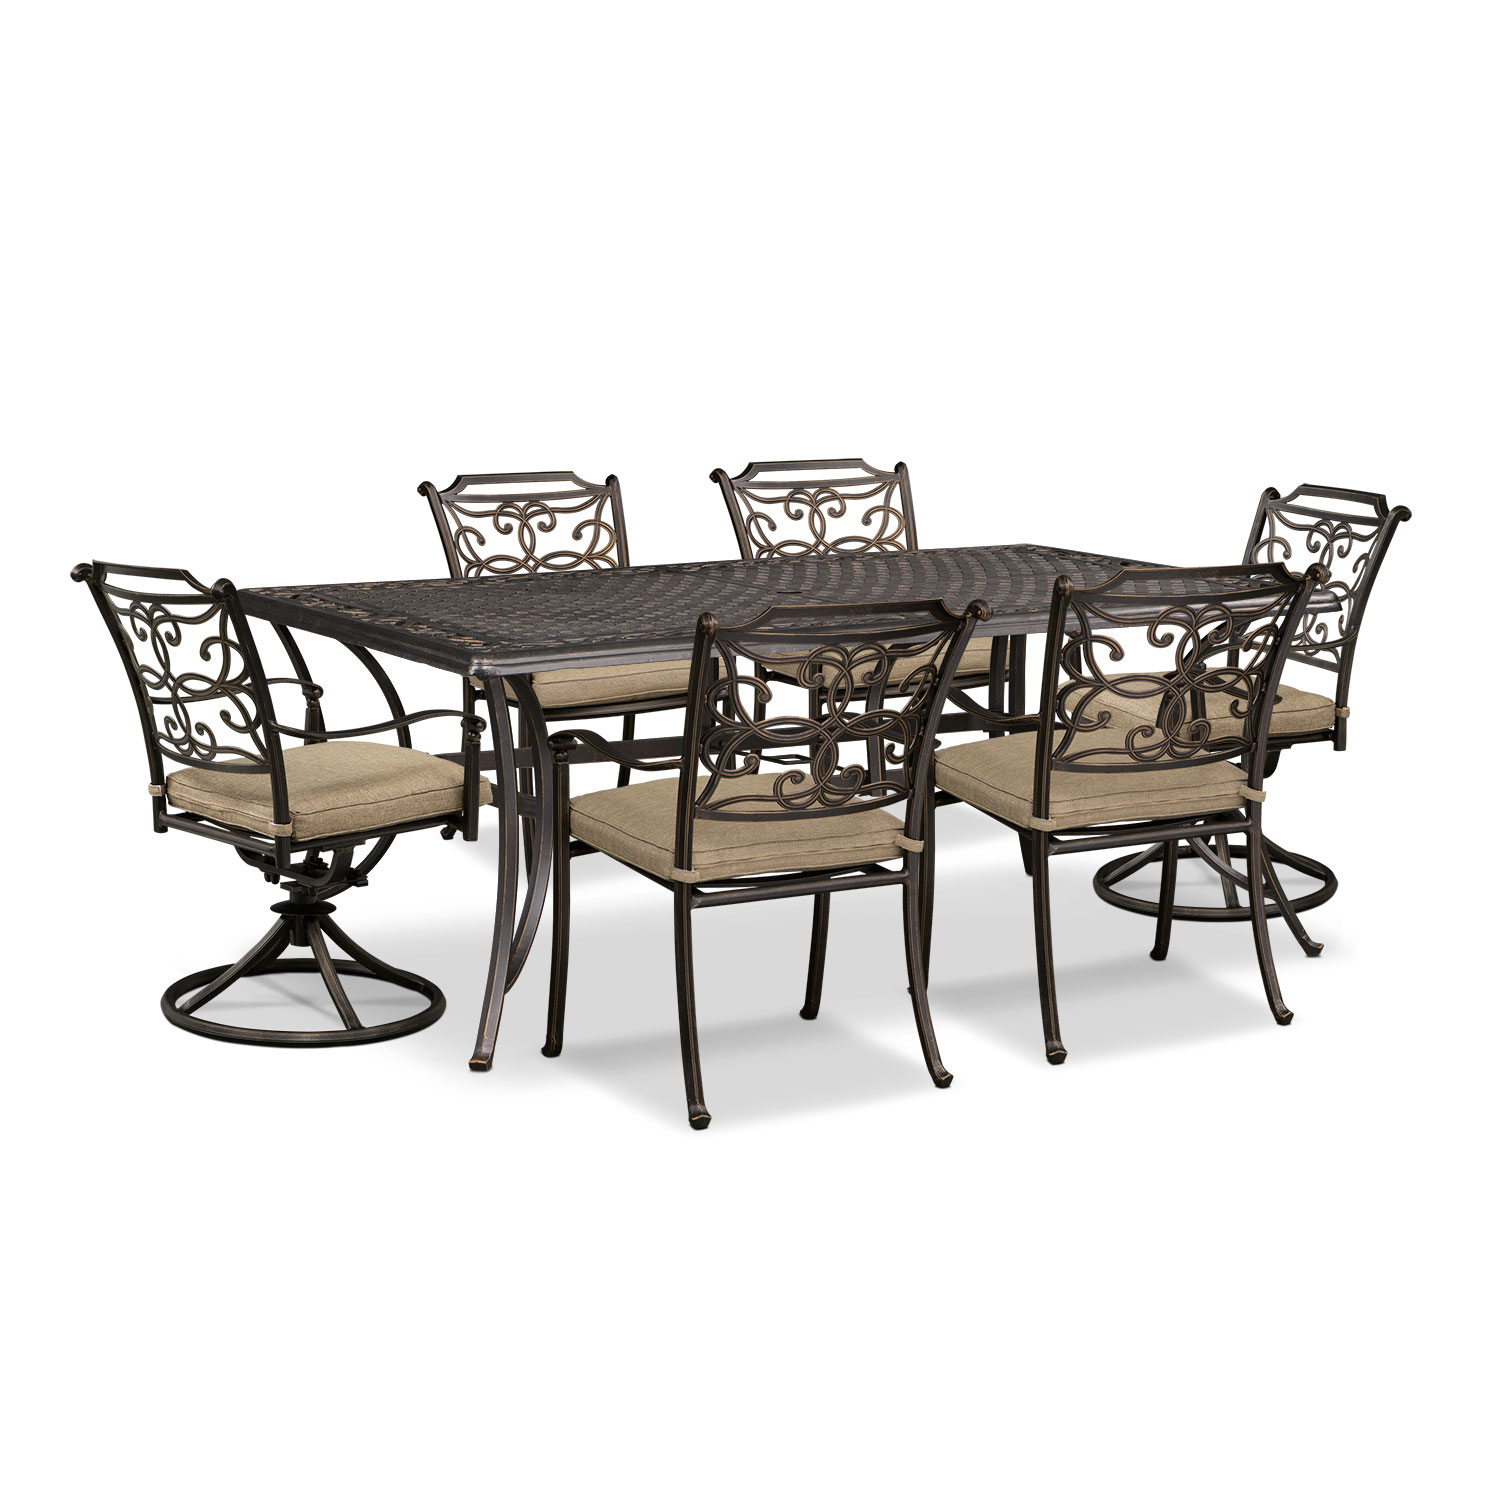 Ocala 7 Pc. Outdoor Dinette